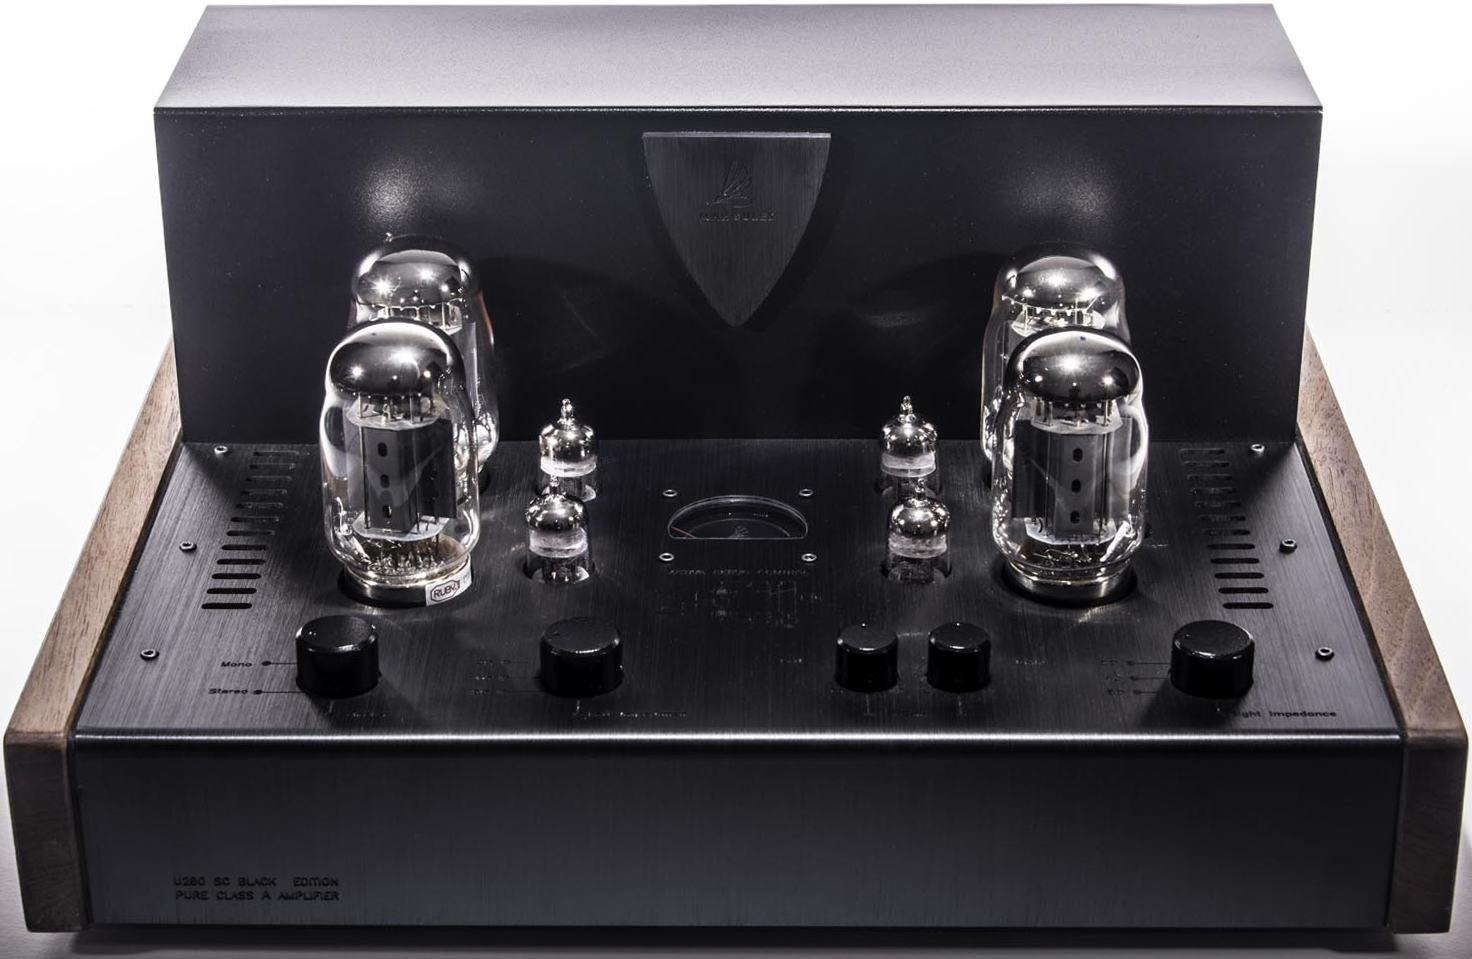 "Margules Group U-280sc ""Black"" Amplifier Review"